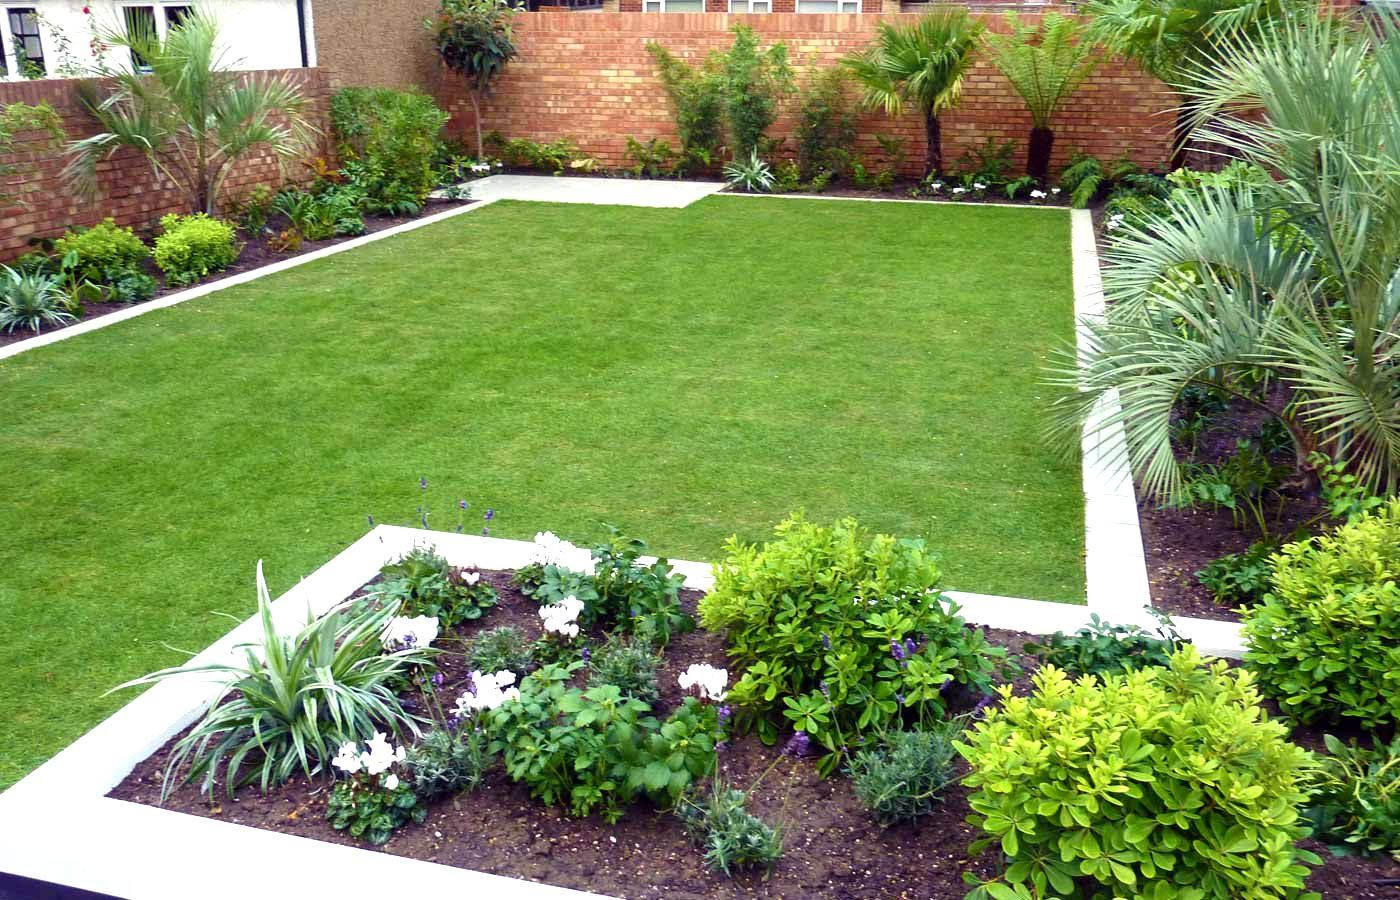 Simple garden designs no fret small garden design for Small garden design